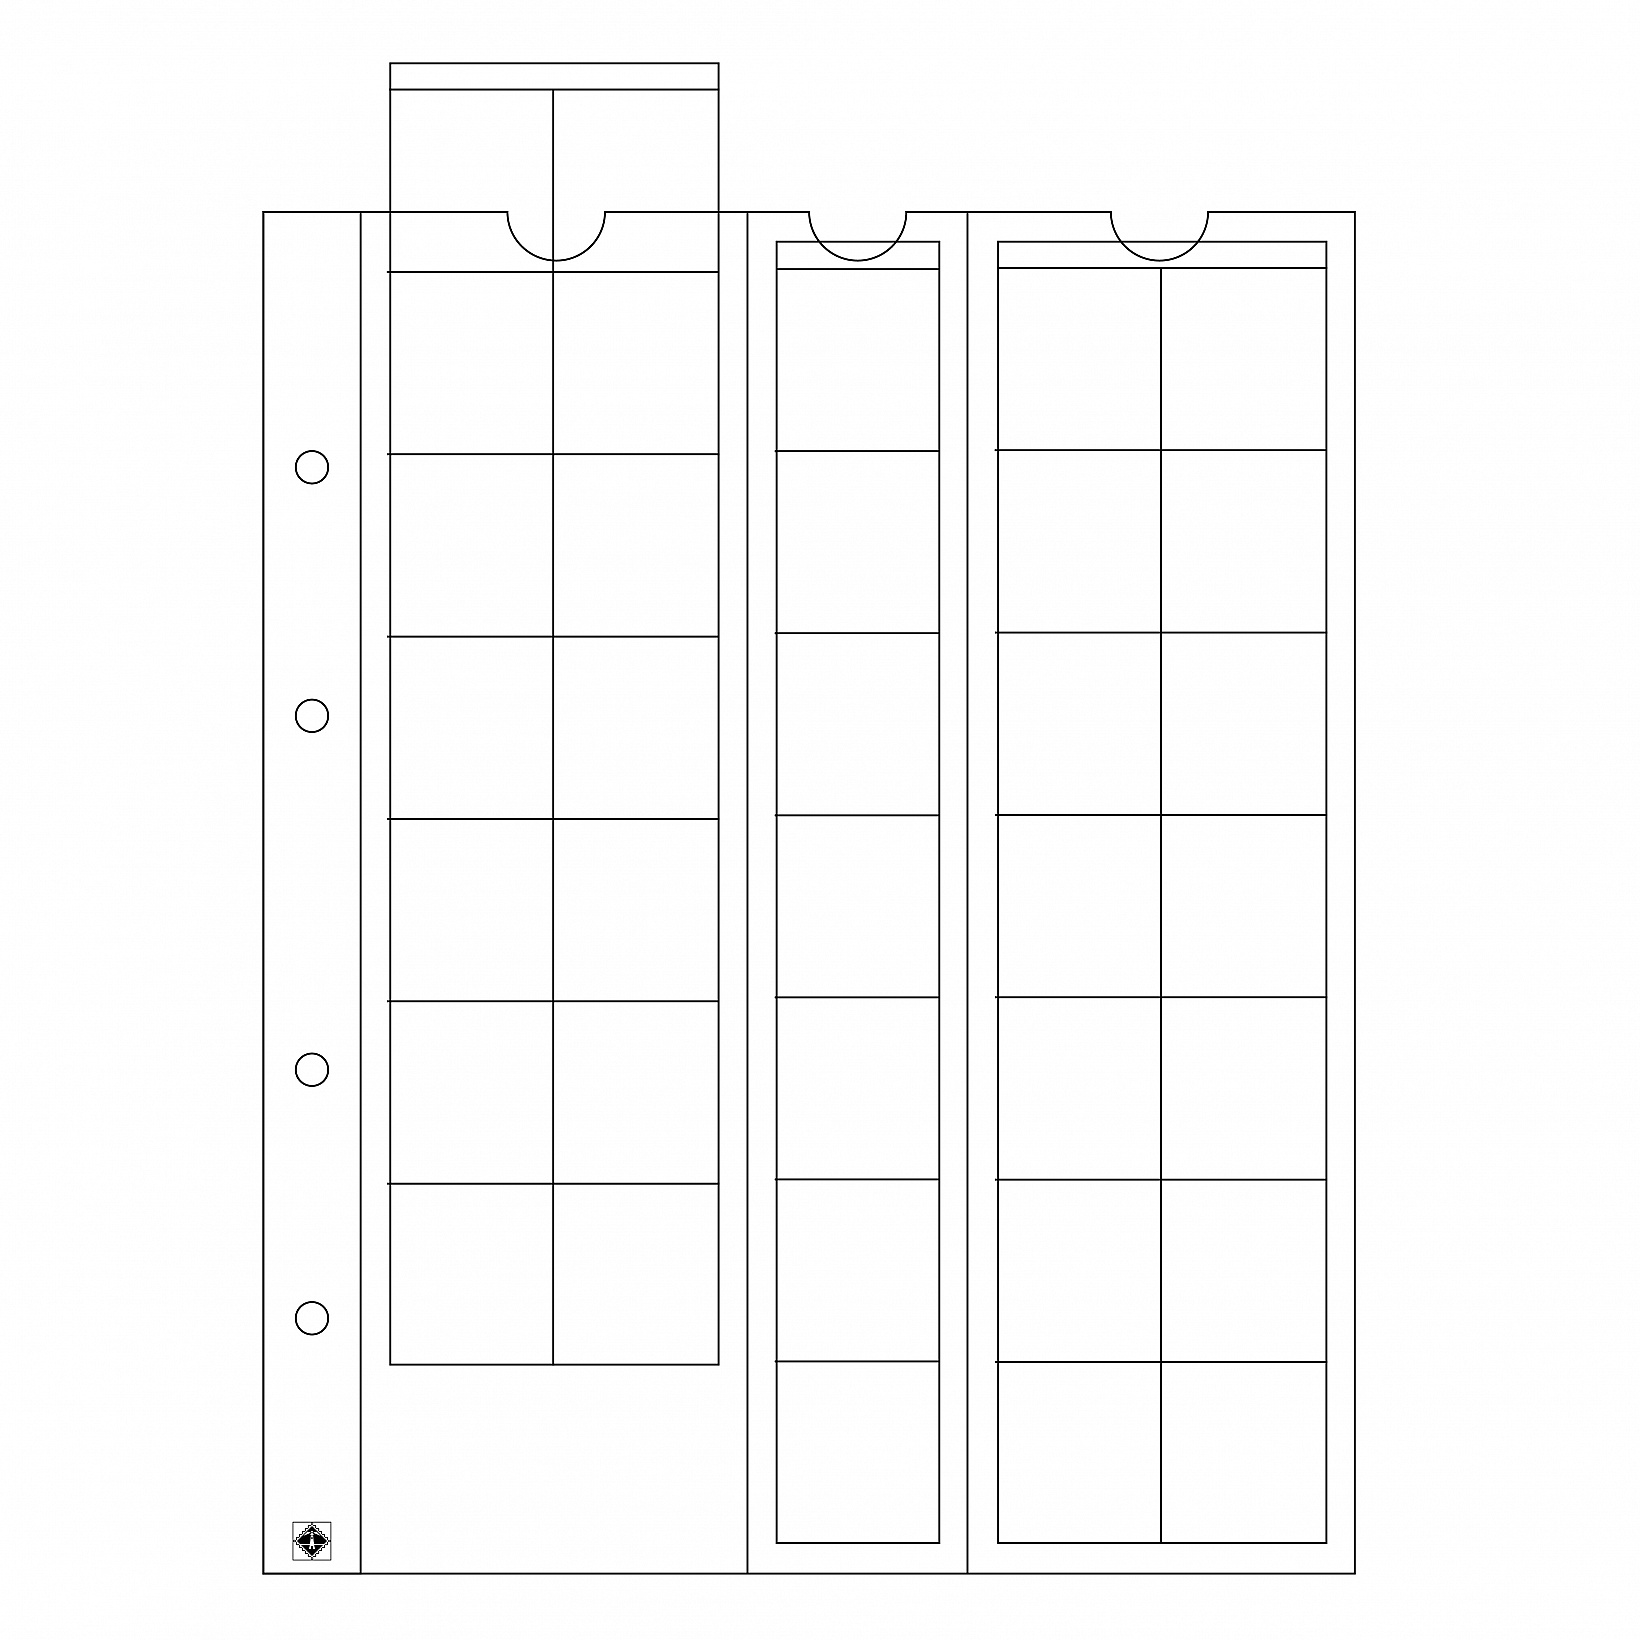 coin-sheets-optima-for-35-coins-up-to-27-mm-o-clear